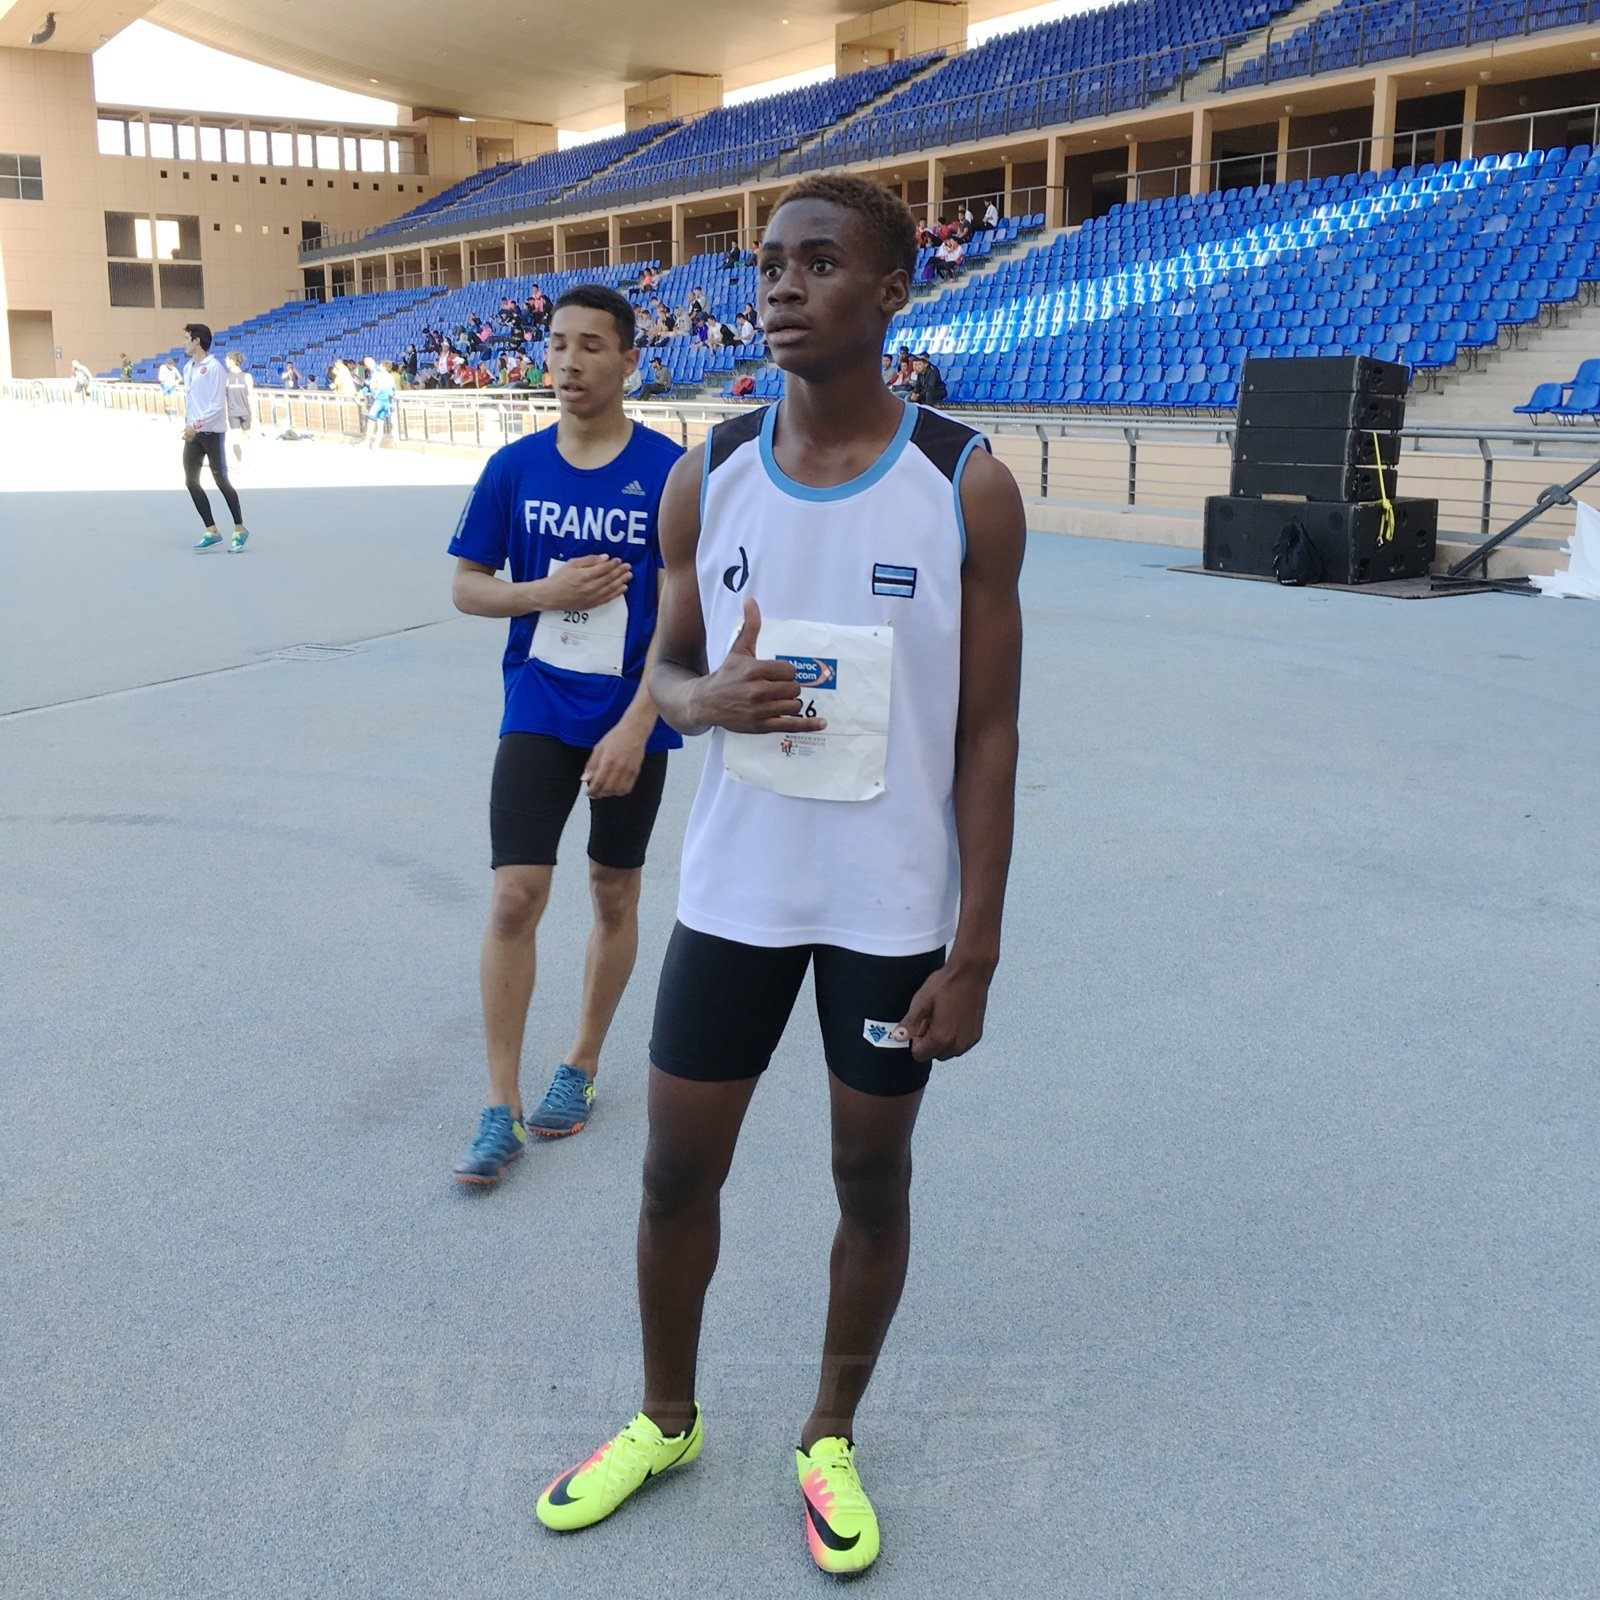 Bernard Olesite of Botswana after winning the boys 400m at the Gymnasiade 2018 in Marrakech / Photo Credit: Yomi Omogbeja